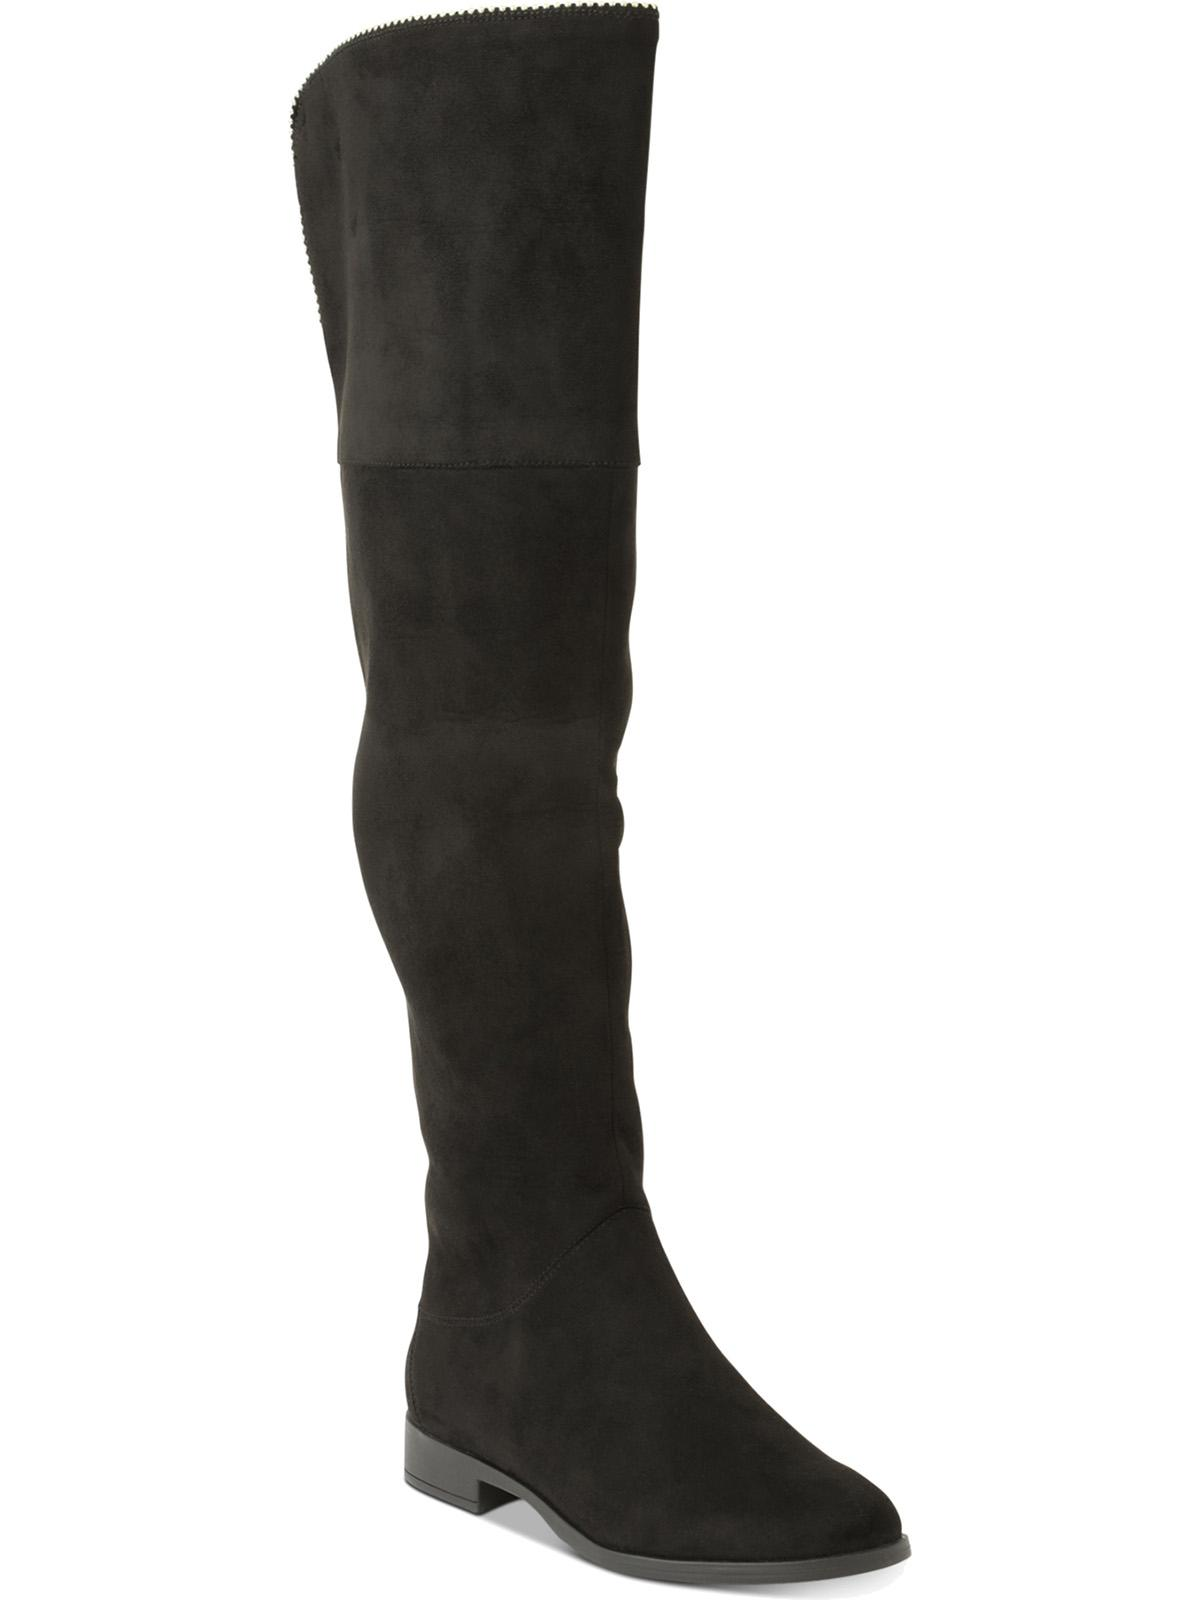 tall over the knee boots